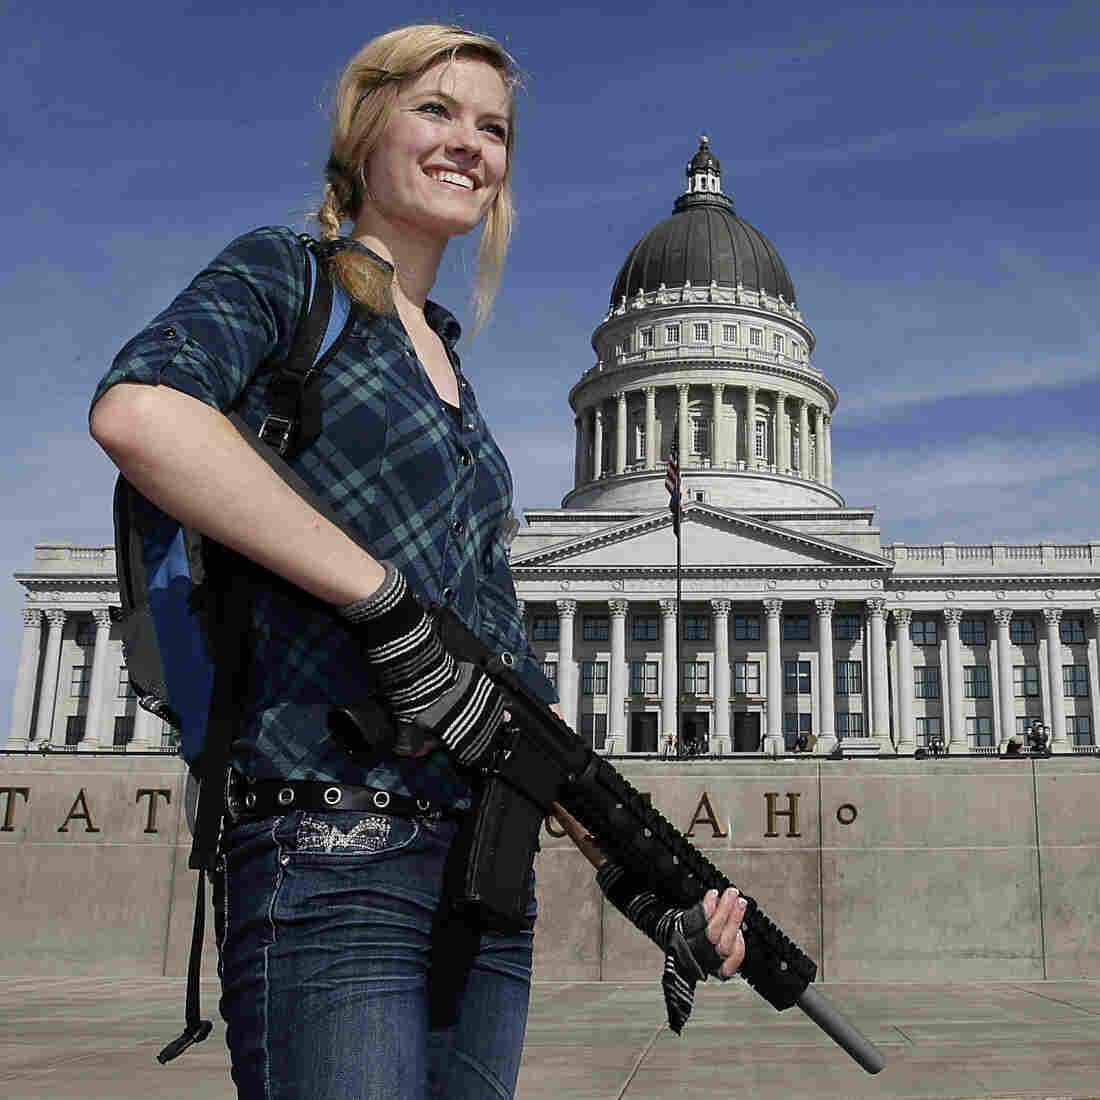 More than half of American women now say owning a gun protects people from becoming victims of crime, according to Pew. Here, a woman carries a rifle at a gun rights rally at the Utah State Capitol last year.